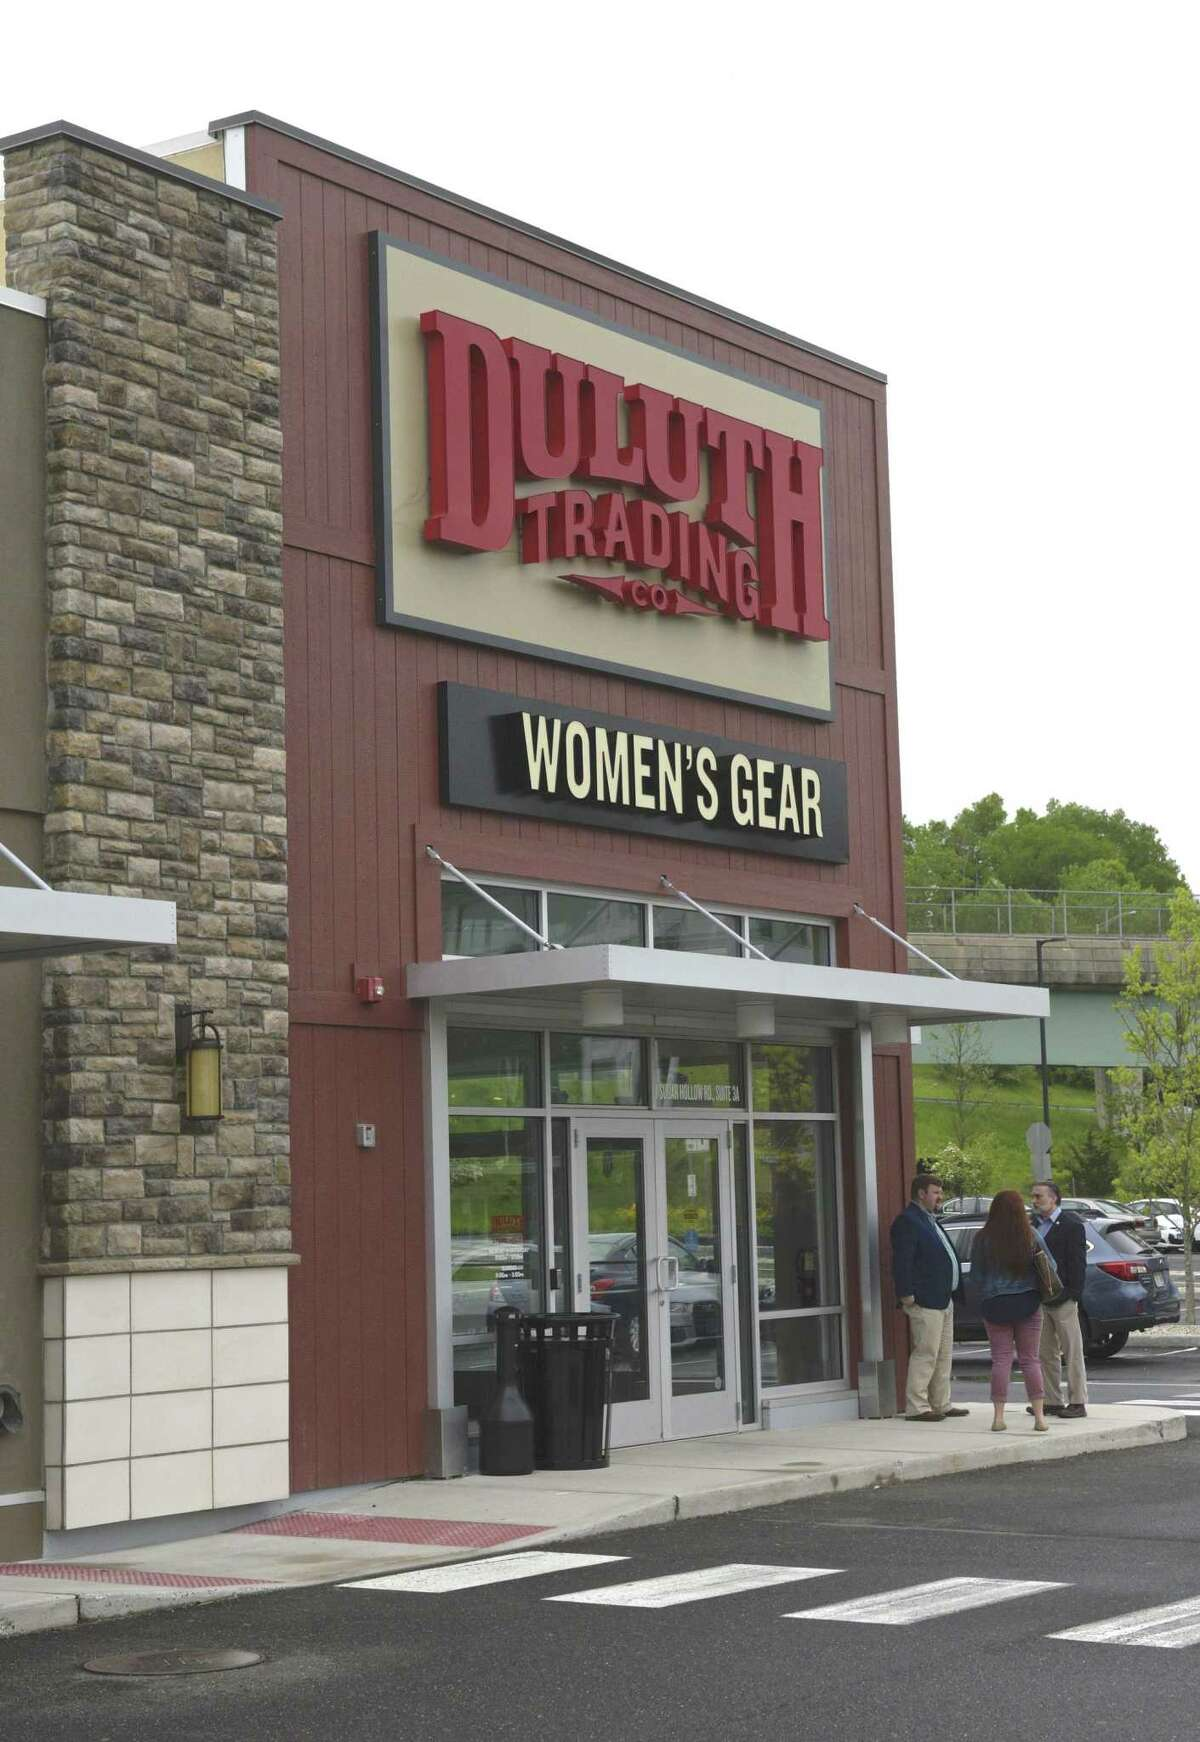 Grand opening of the new Duluth Trading Co store in the Shops at Marcus Dairy shopping center, Danbury, Conn, Thursday, May 23, 2019.